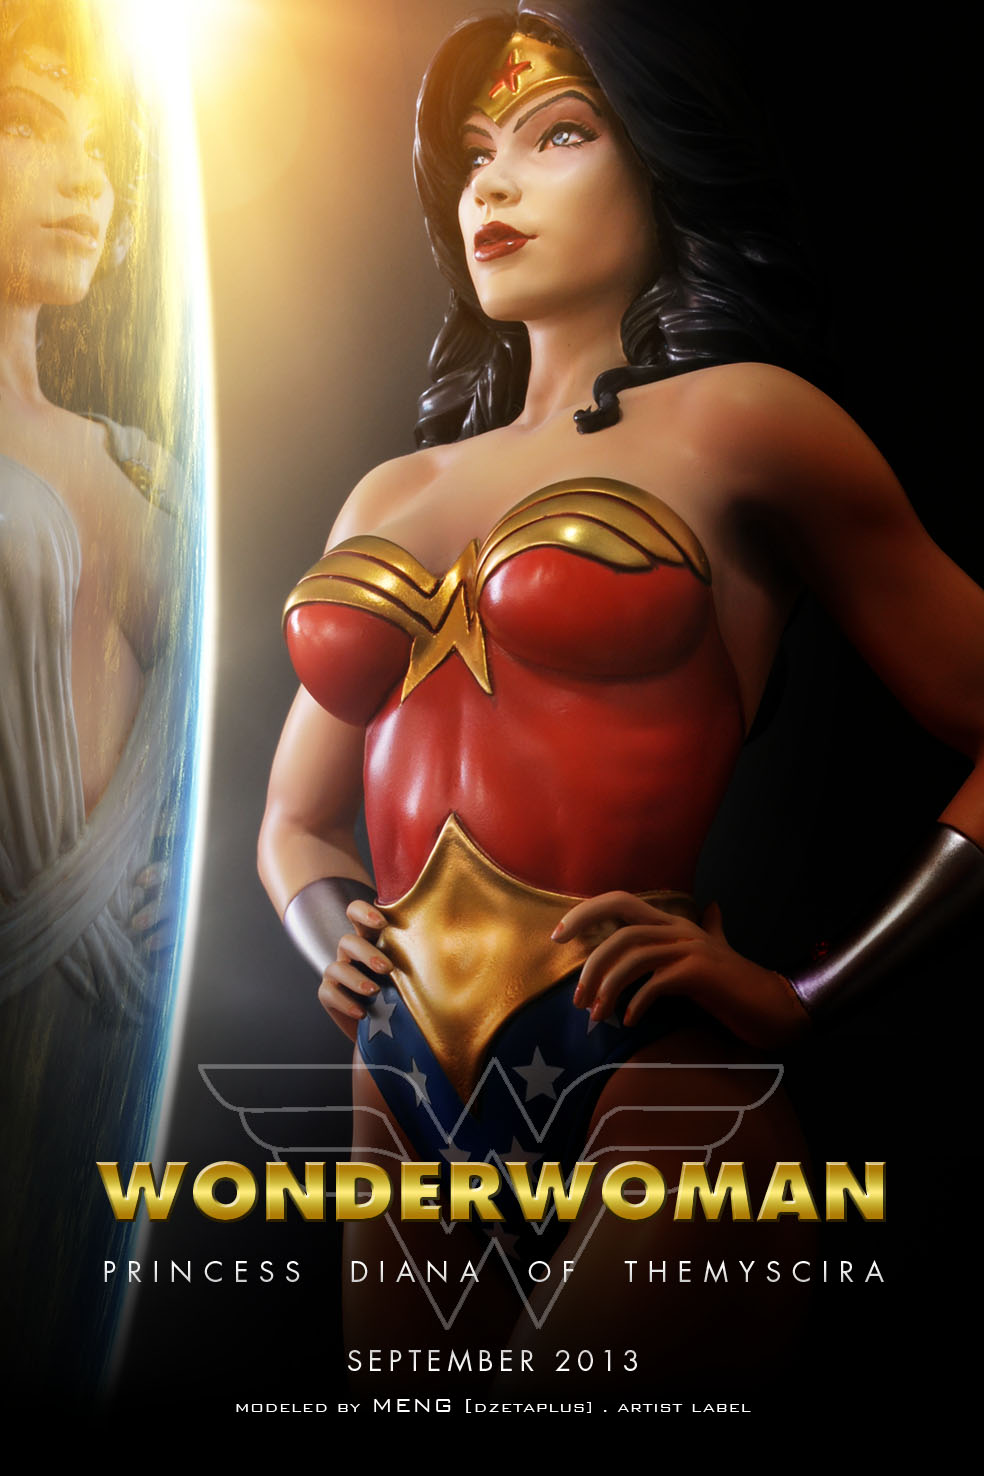 Dz-wonderwoman2013-c-h by rvbhal